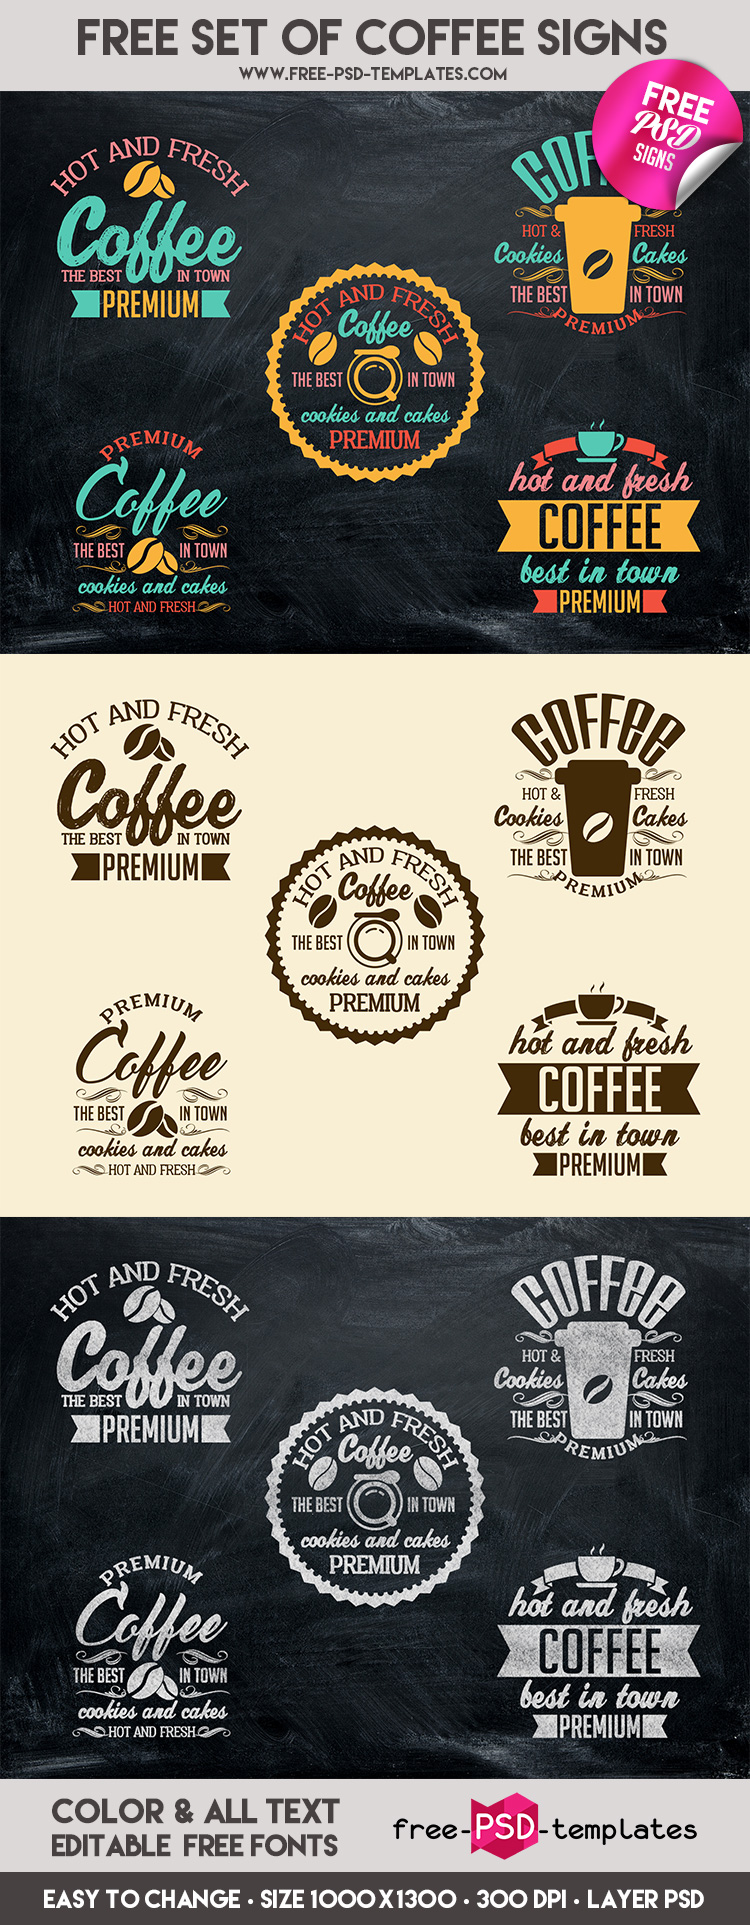 Preview_Set_Of_Coffee_Signs